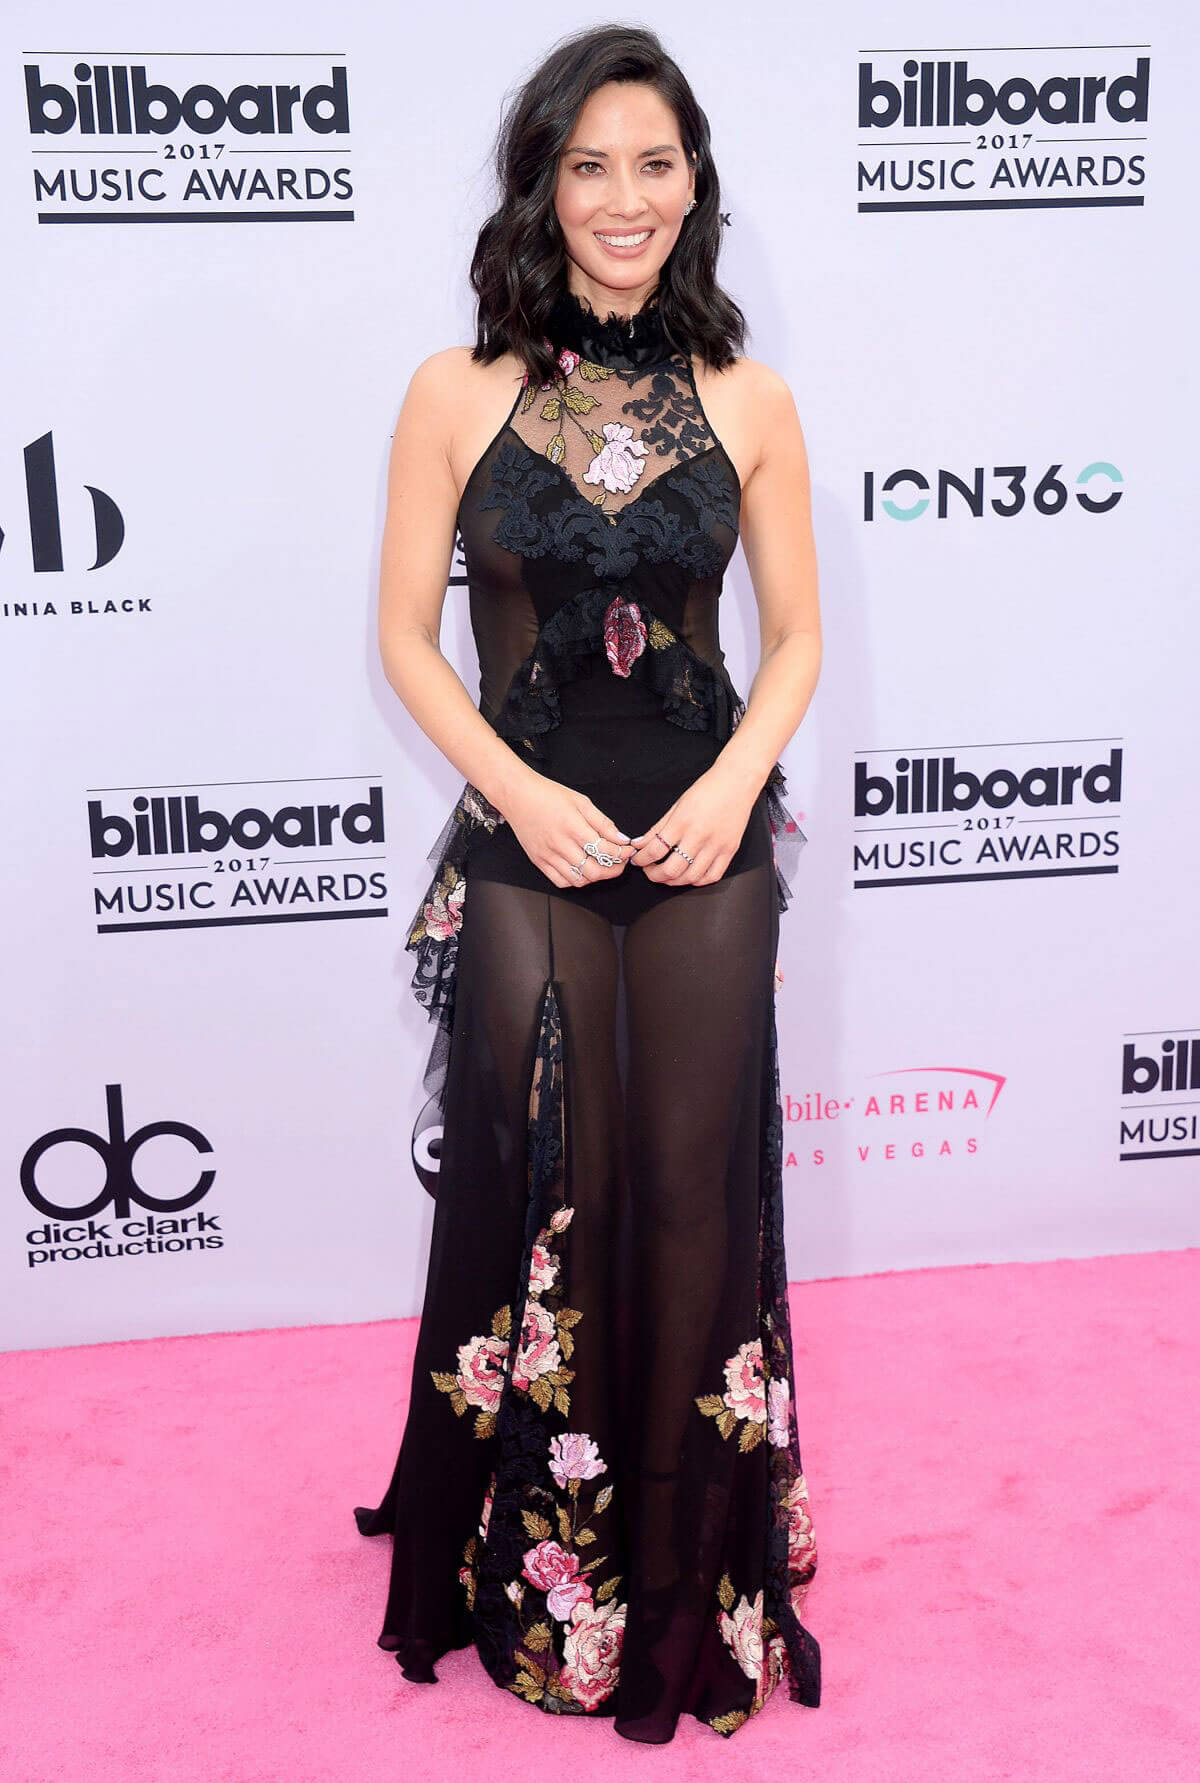 Olivia Munn at Billboard Music Awards 2017 in Las Vegas